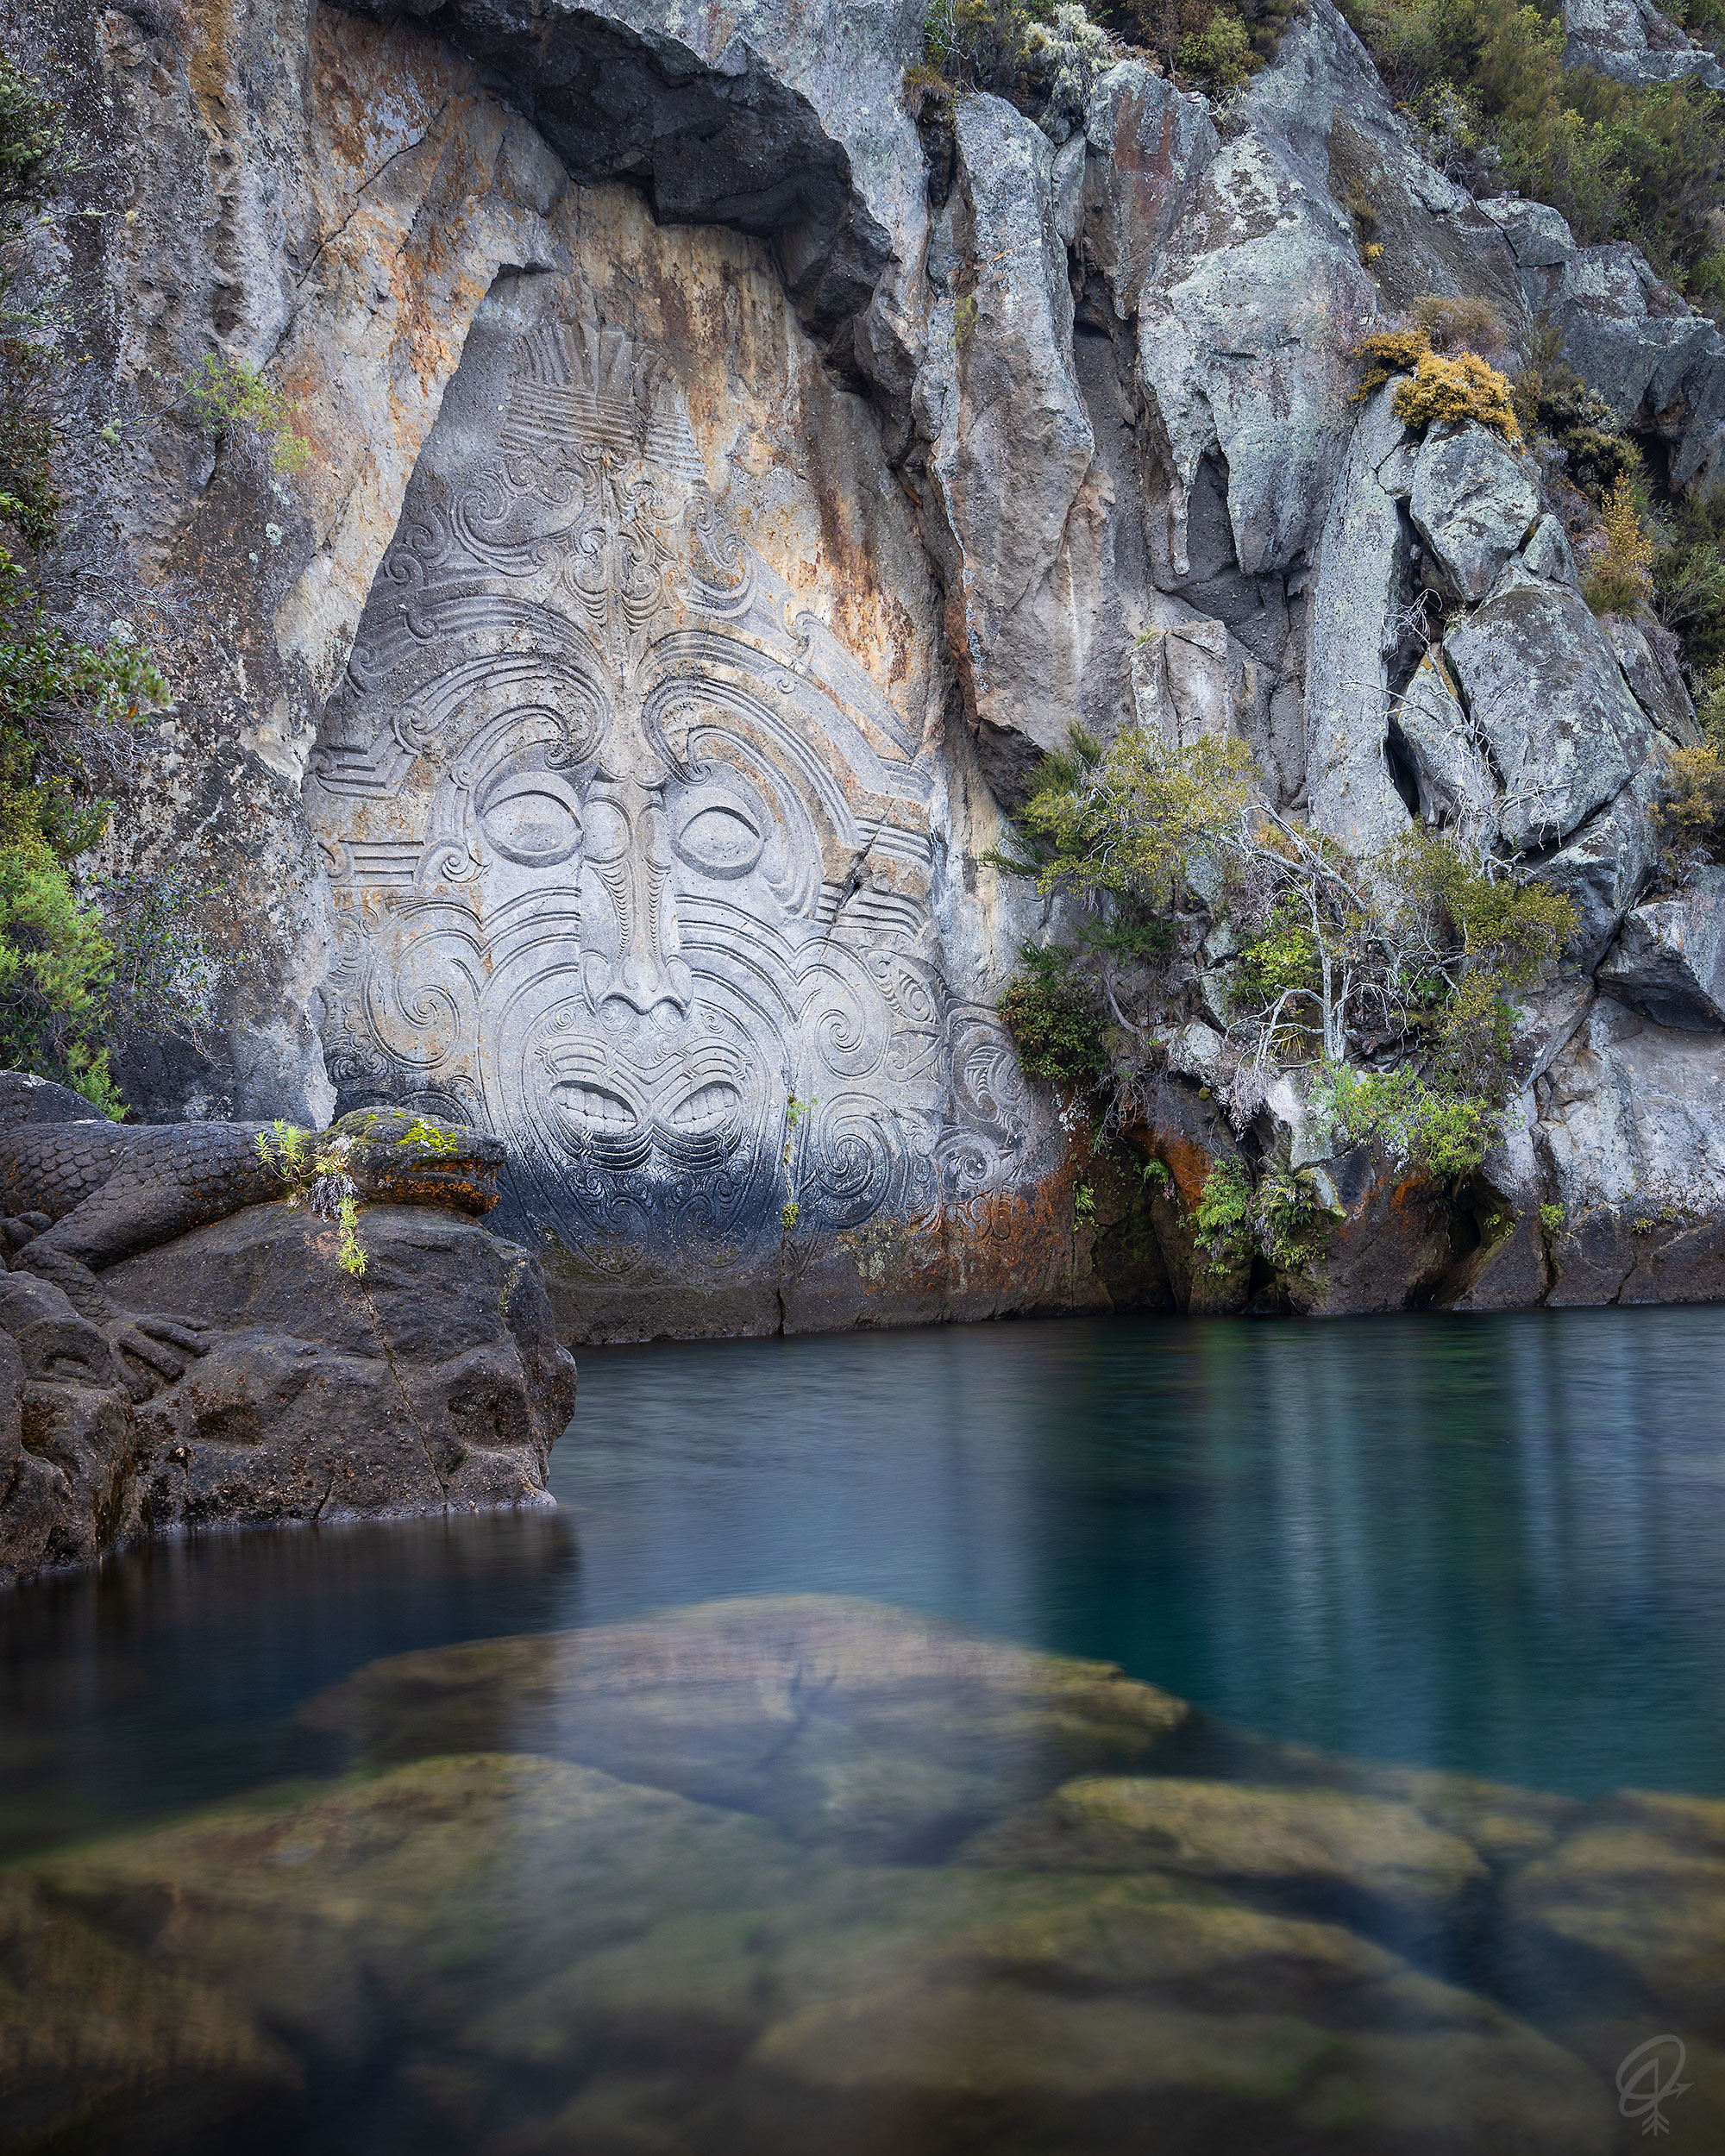 maori carvings on the cliff